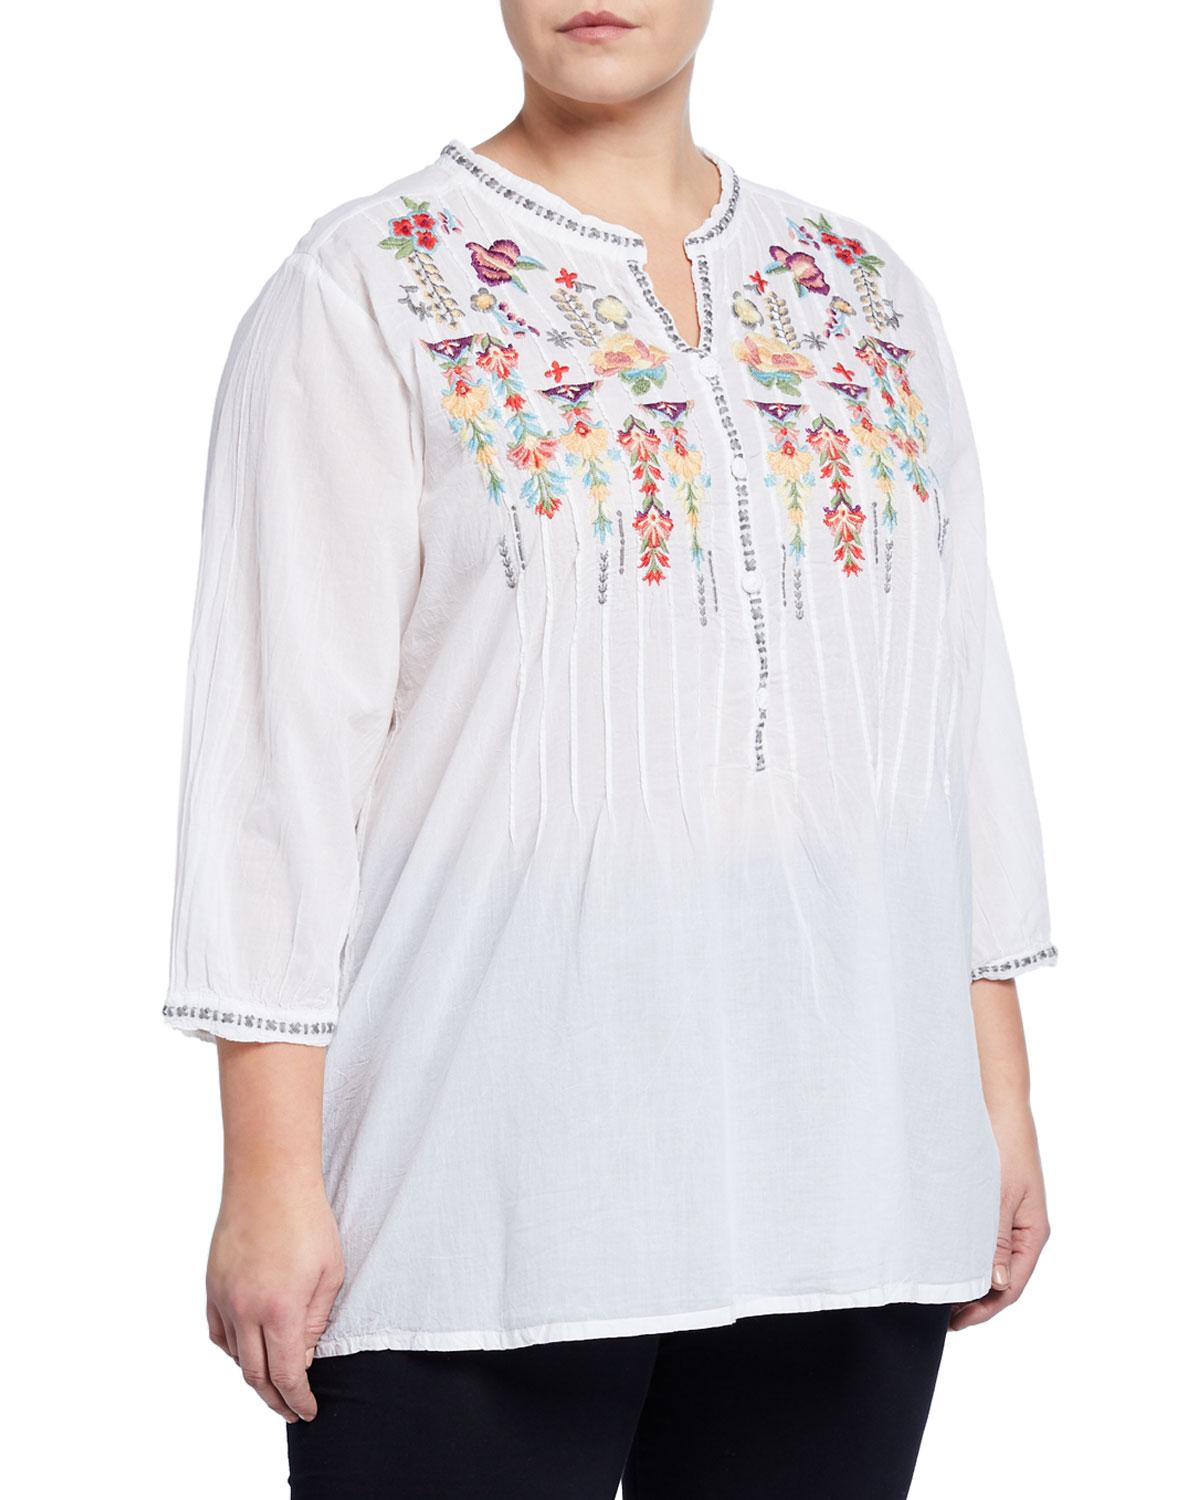 f0fb9acef89 Lyst - Johnny Was Plus Size Brenda Floral Embroidered Tunic in White